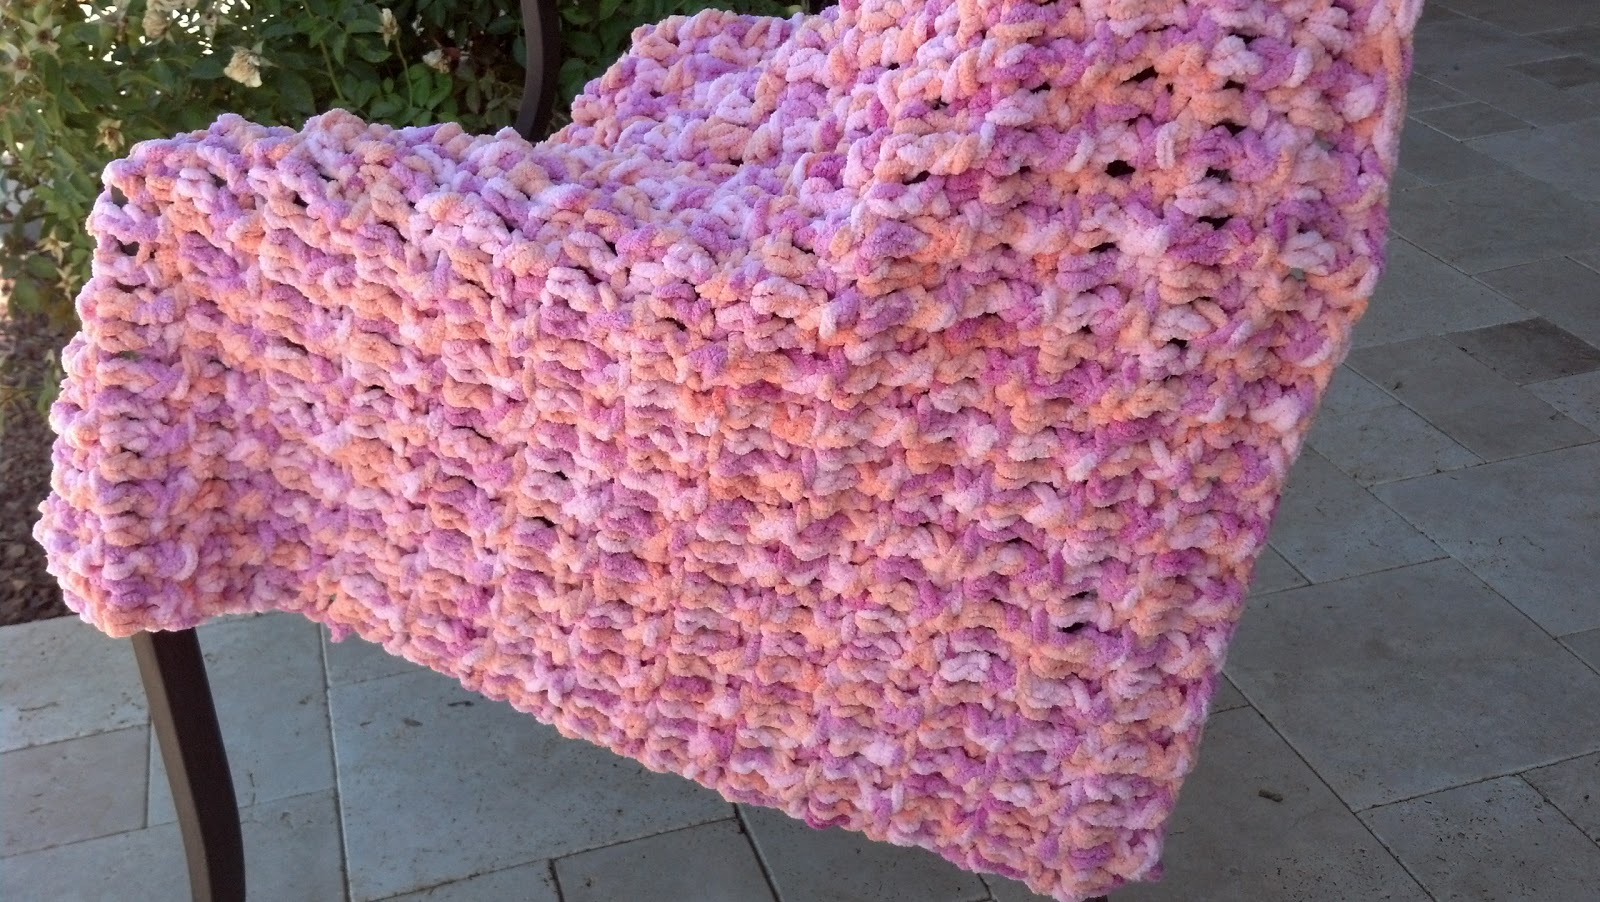 Crochet Patterns Using Bernat Blanket Yarn : ... the Gap: Stash Buster Challenge - Thick & Cuddly Baby Blanket